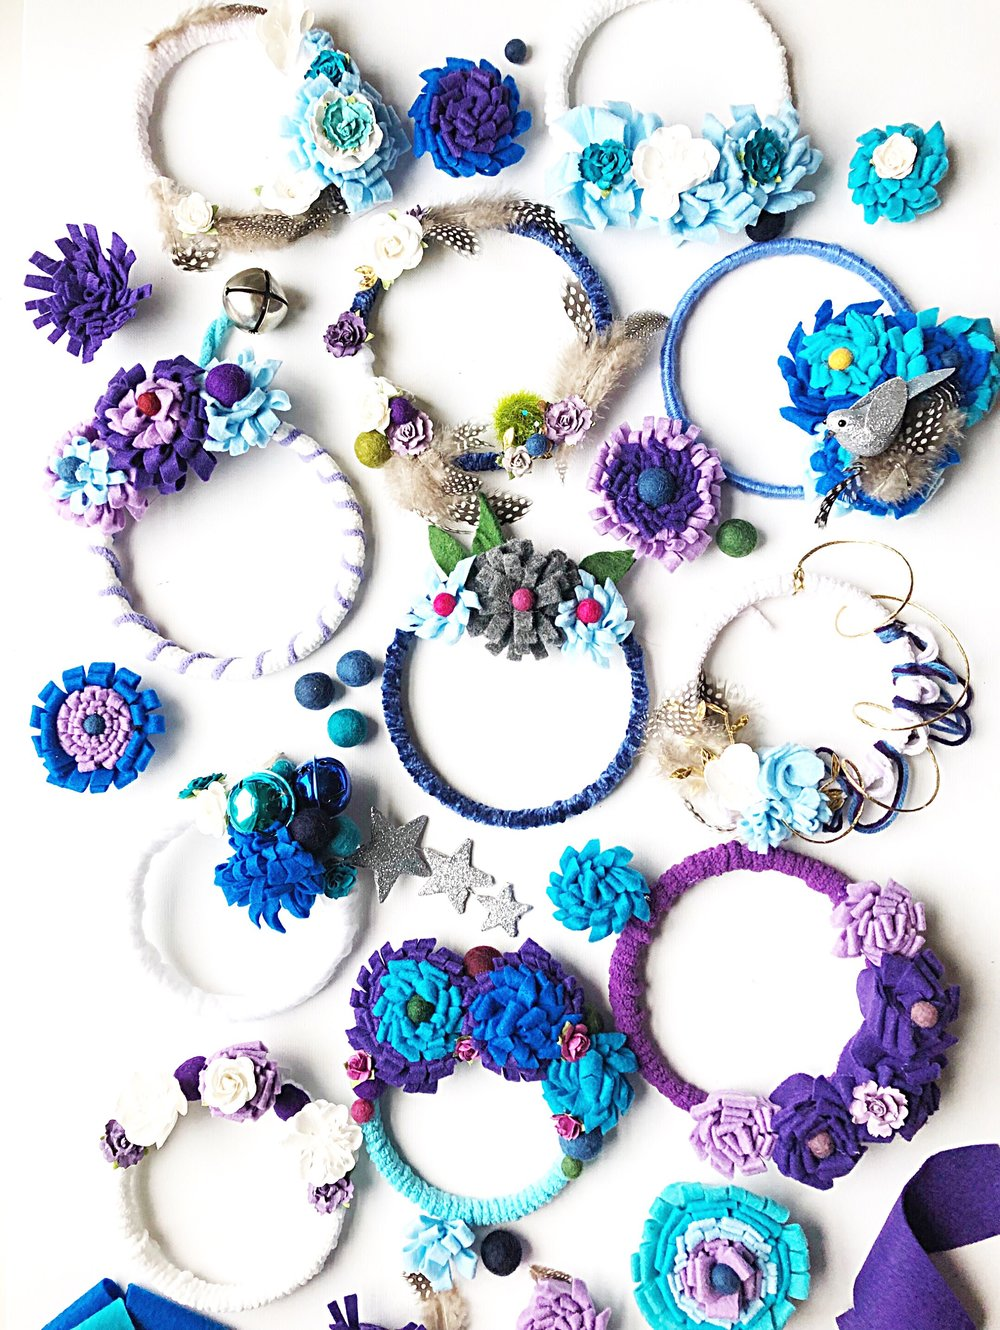 Atelier Ashley Flowers -Light-up-the-seasons-+ Four Seasons Washington DC+ DIY + Craft Project + Felt Flowers + Blue Flowers + Purple Flowers + Community Over Competition + Charity + Children's National Hospital + Craft Party